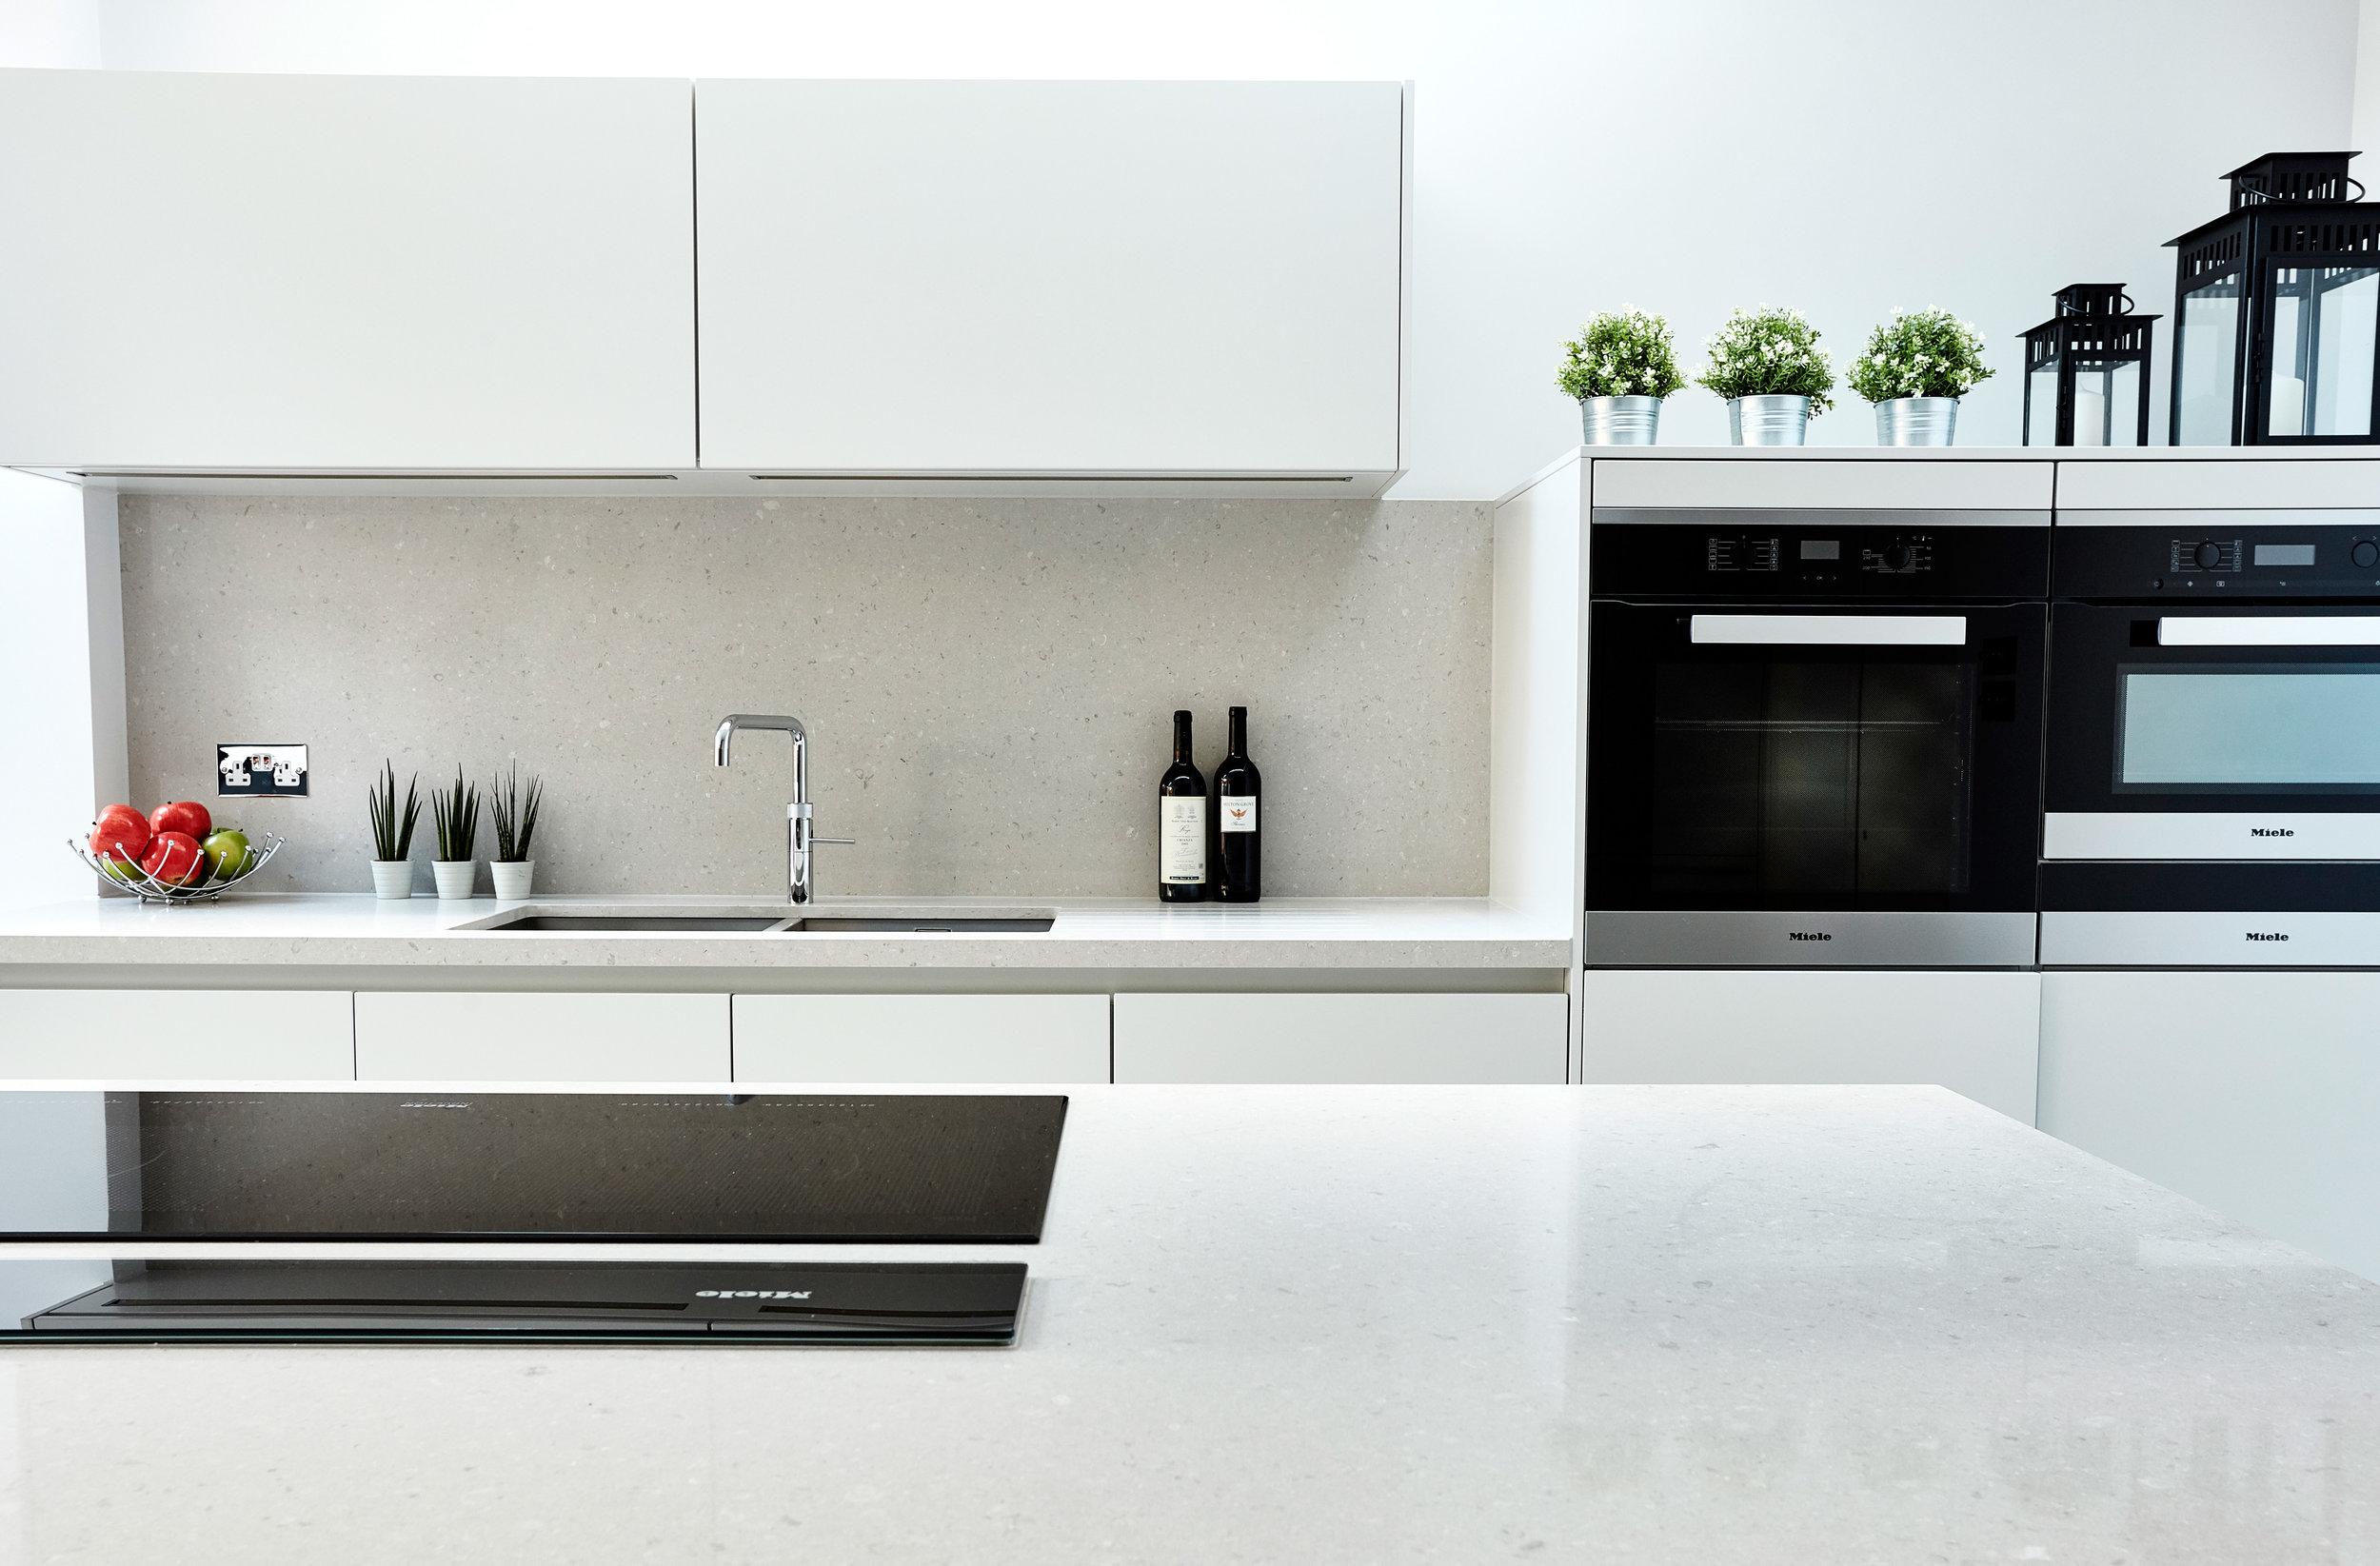 kitchen_modern_interior_worktop.jpg